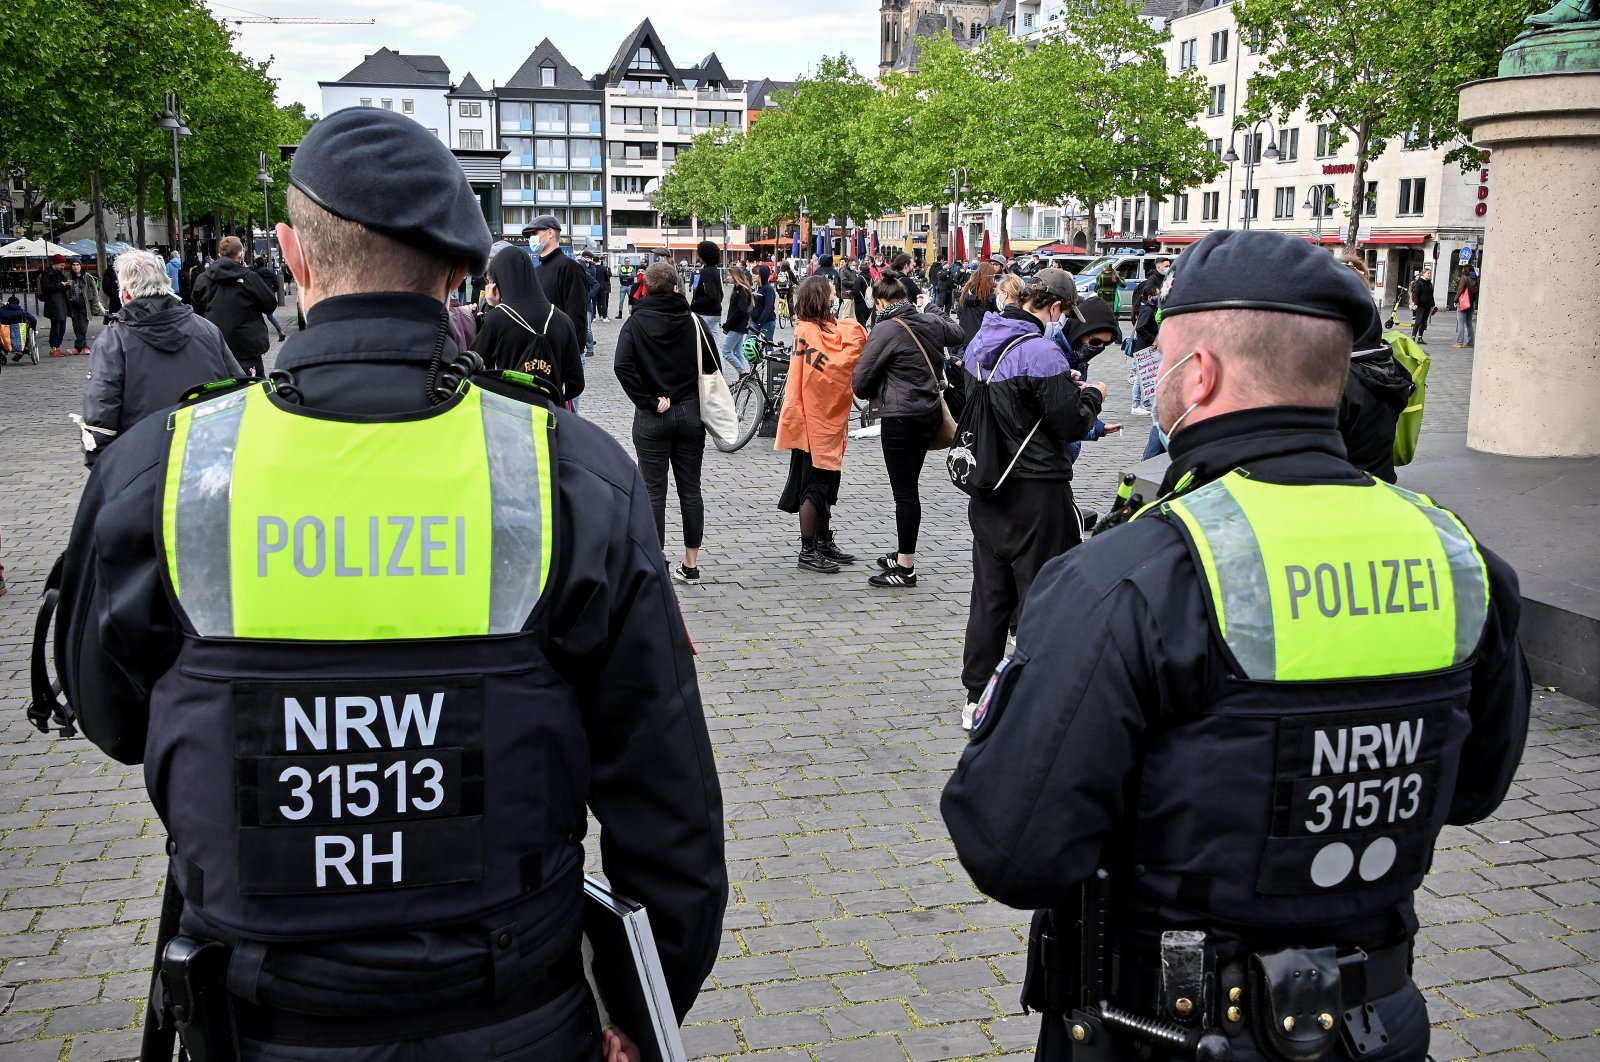 Police officers observe demonstrators during a gathering on the Heumarkt in Cologne, Germany, 11 May 2020. (EPA Photo)